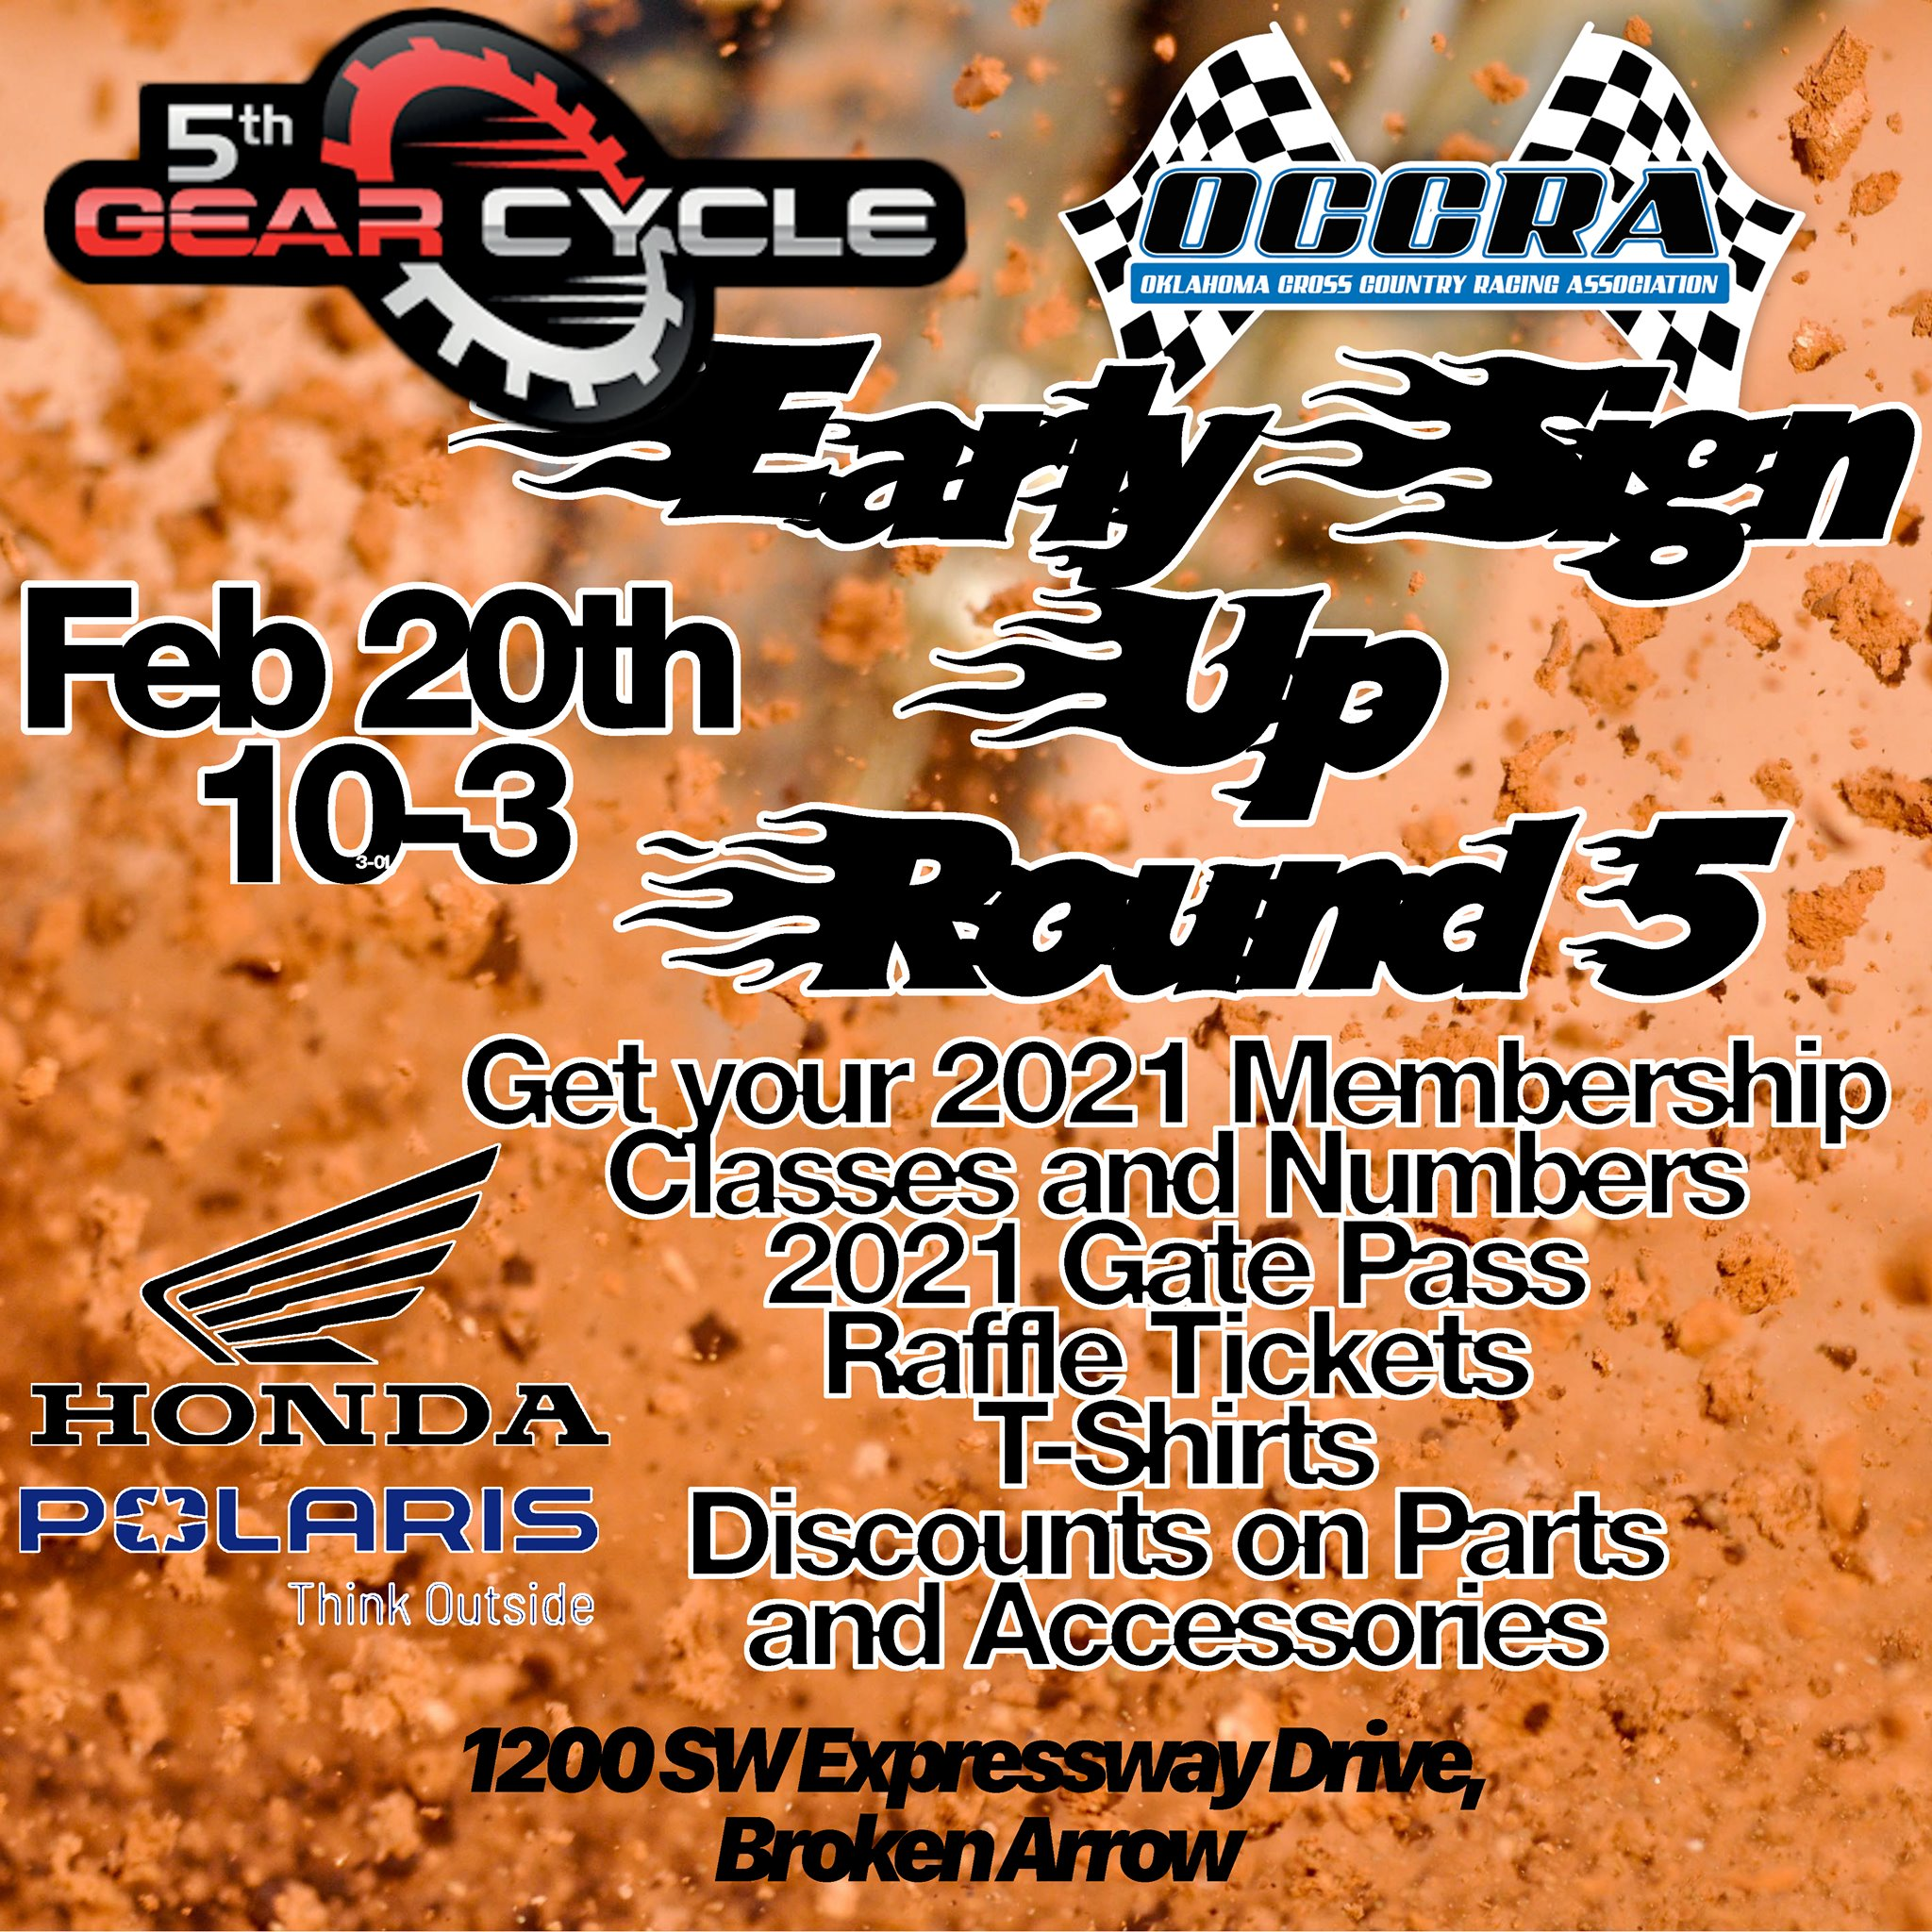 Final Early Sign-Up at 5th Gear Cycle